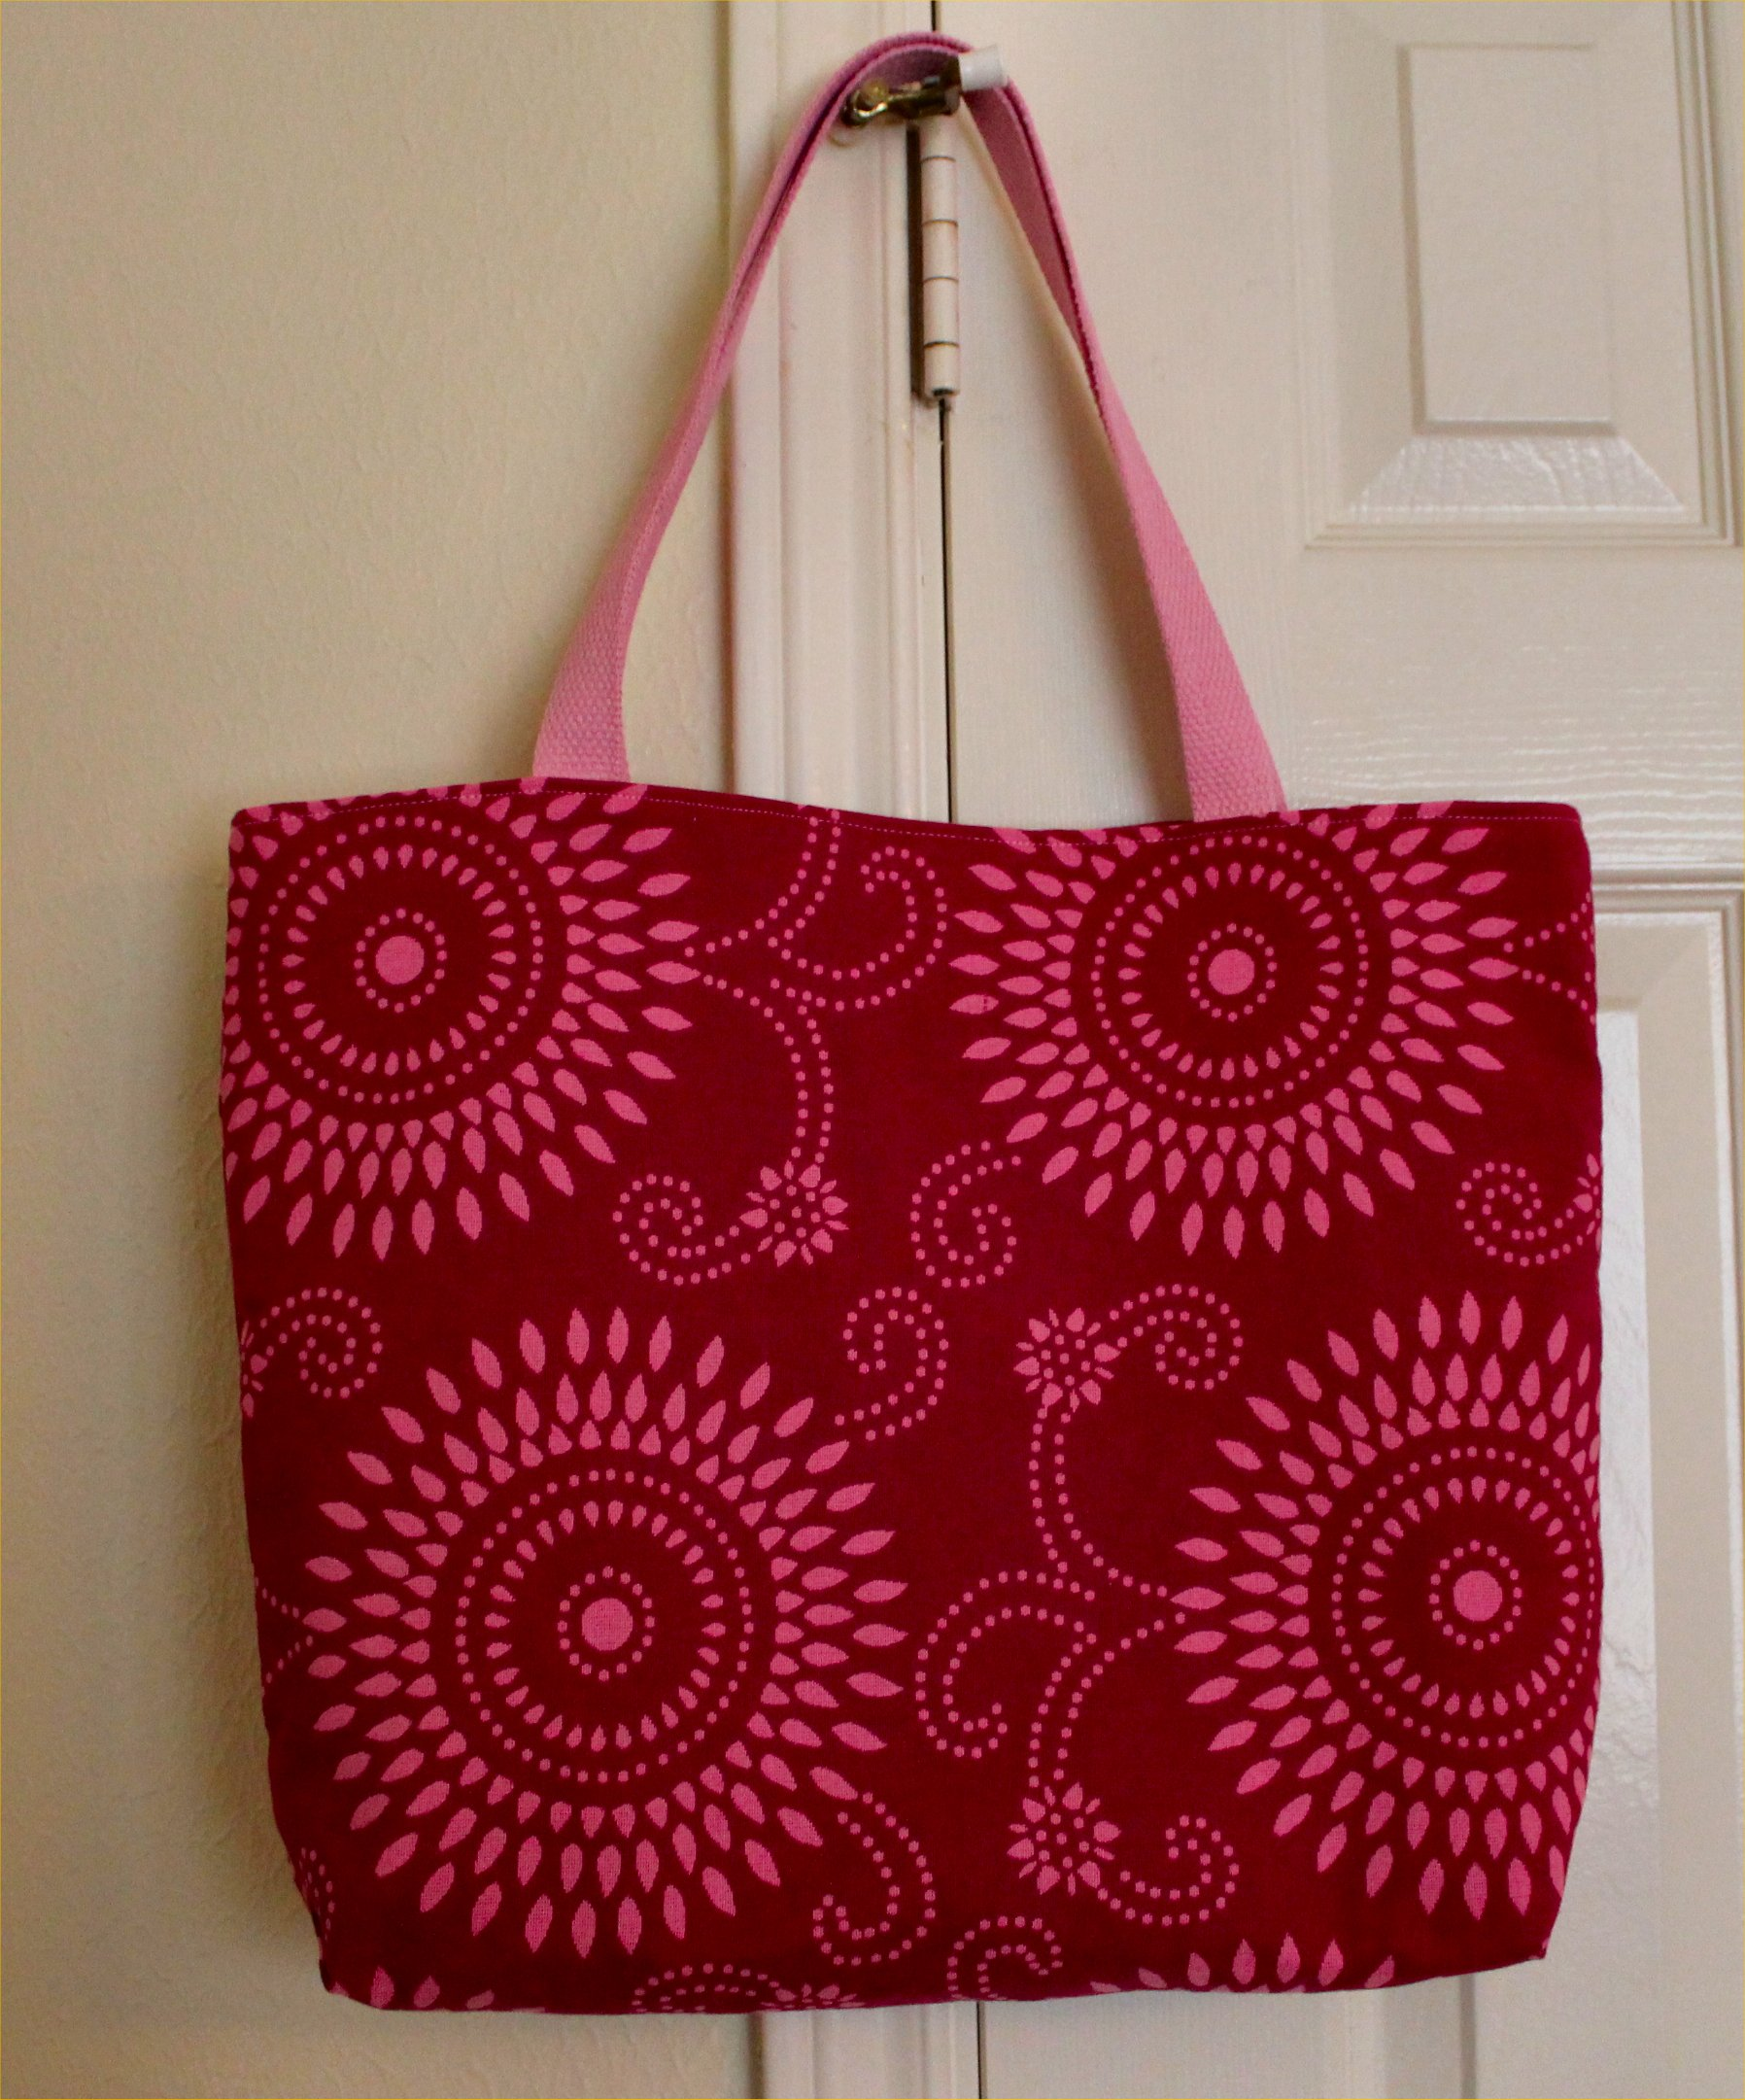 how to make a tote bag out of upholstery fabric samples | Inside ...